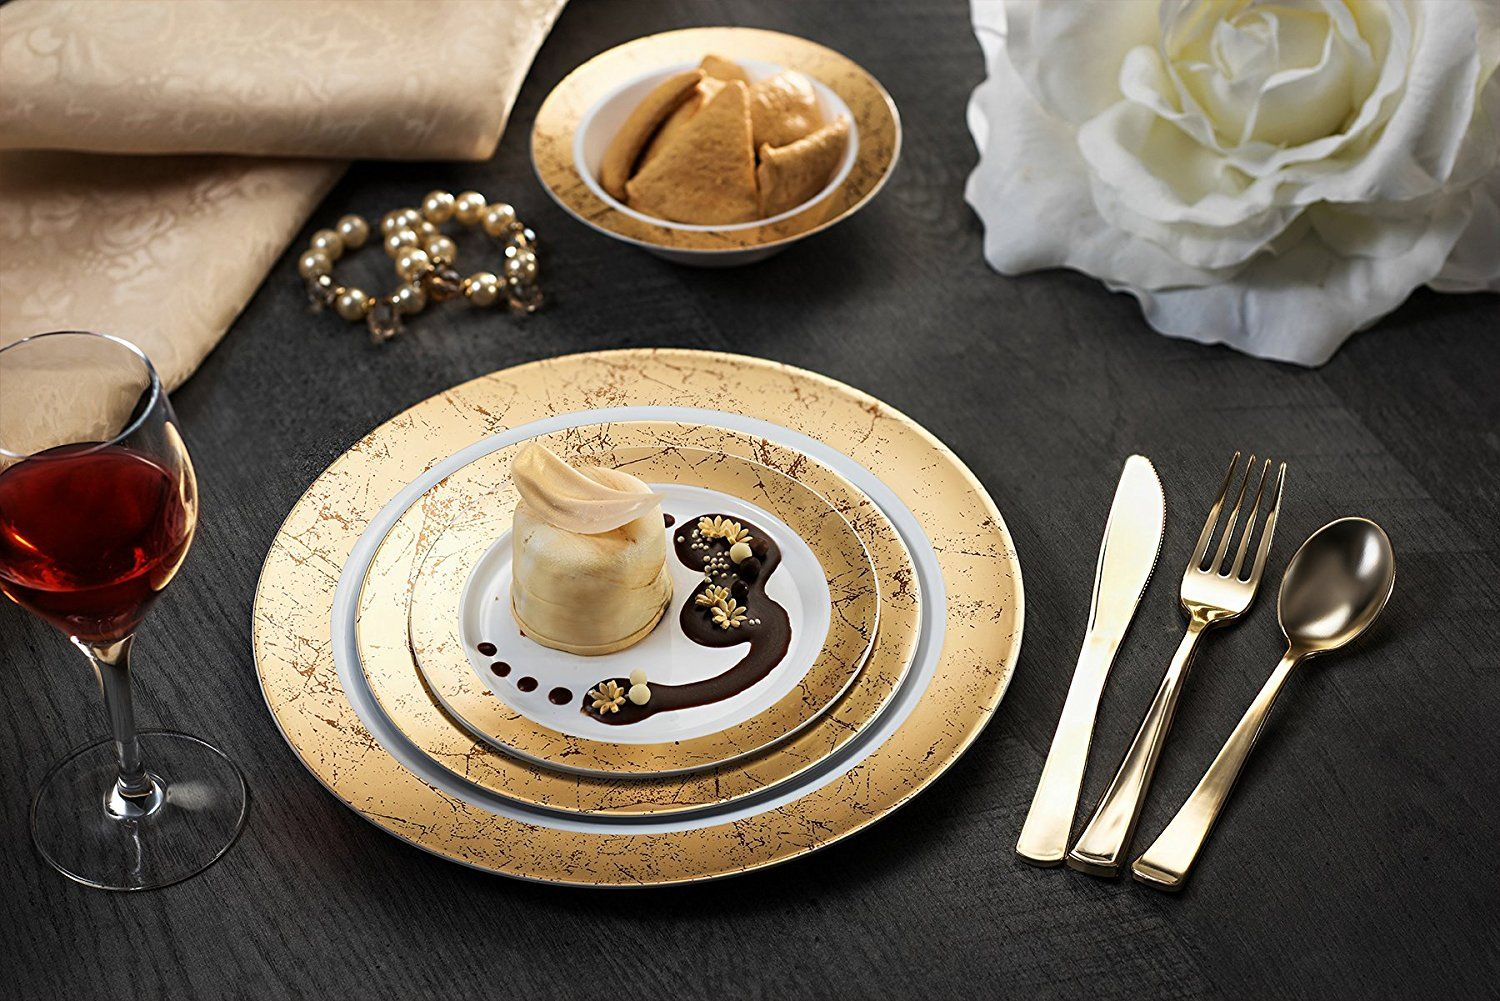 Amazon.com | MAJESTIC PARTY PLATES / WEDDING PLATES | 6 Inch Plastic Plates for Dessert Etc.| White with Gold Rim 40 Pack | Elegant u0026 Fancy Heavy Duty ... & Amazon.com | MAJESTIC PARTY PLATES / WEDDING PLATES | 6 Inch Plastic ...